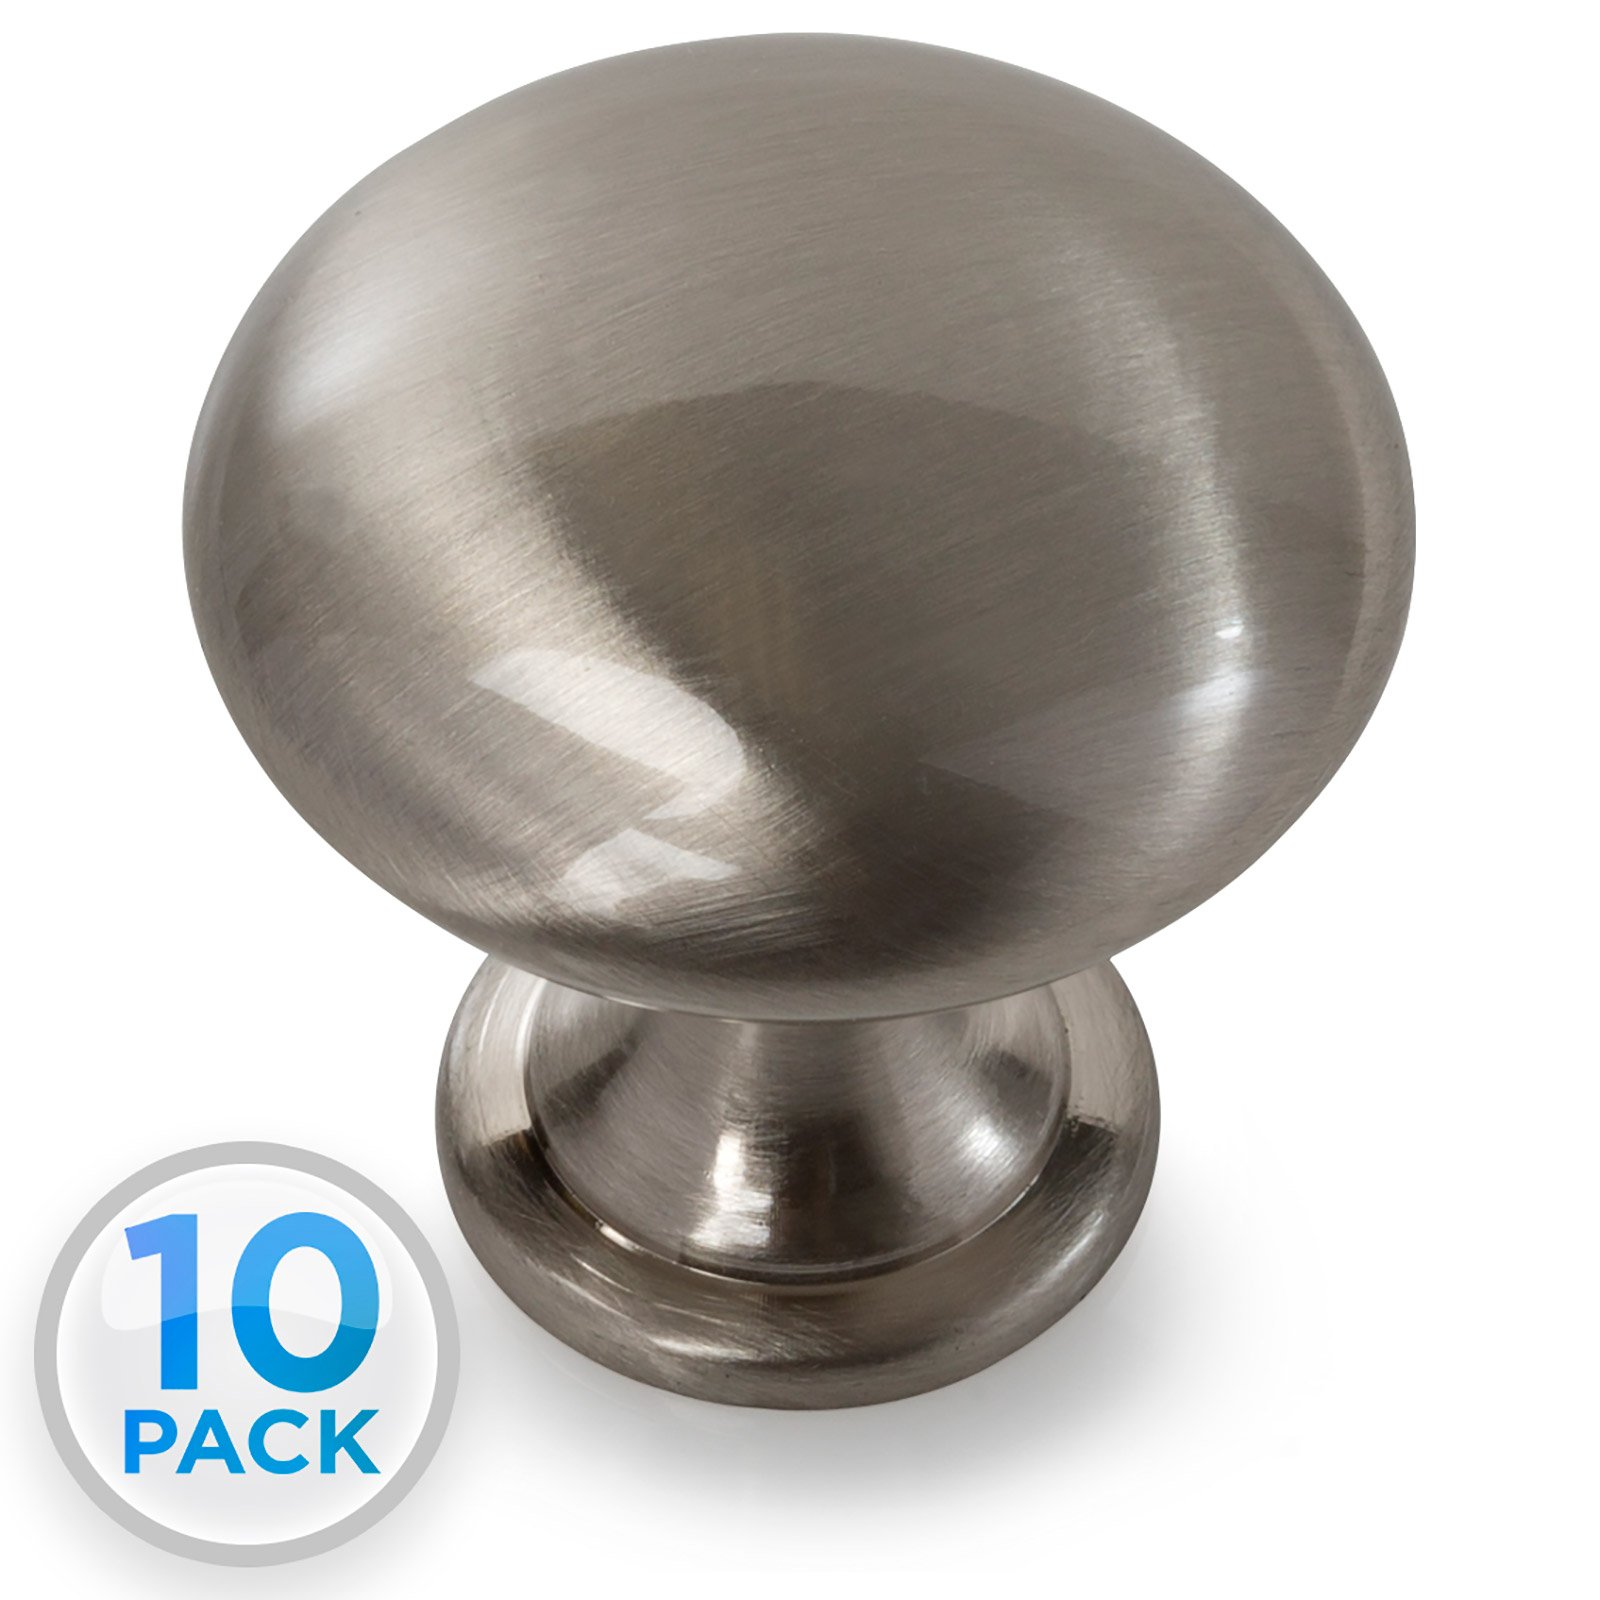 Cauldham Brushed Satin Nickel Cabinet Hardware Round Pull Knob Handle - 1-1/8'' Diameter - 10 Pack